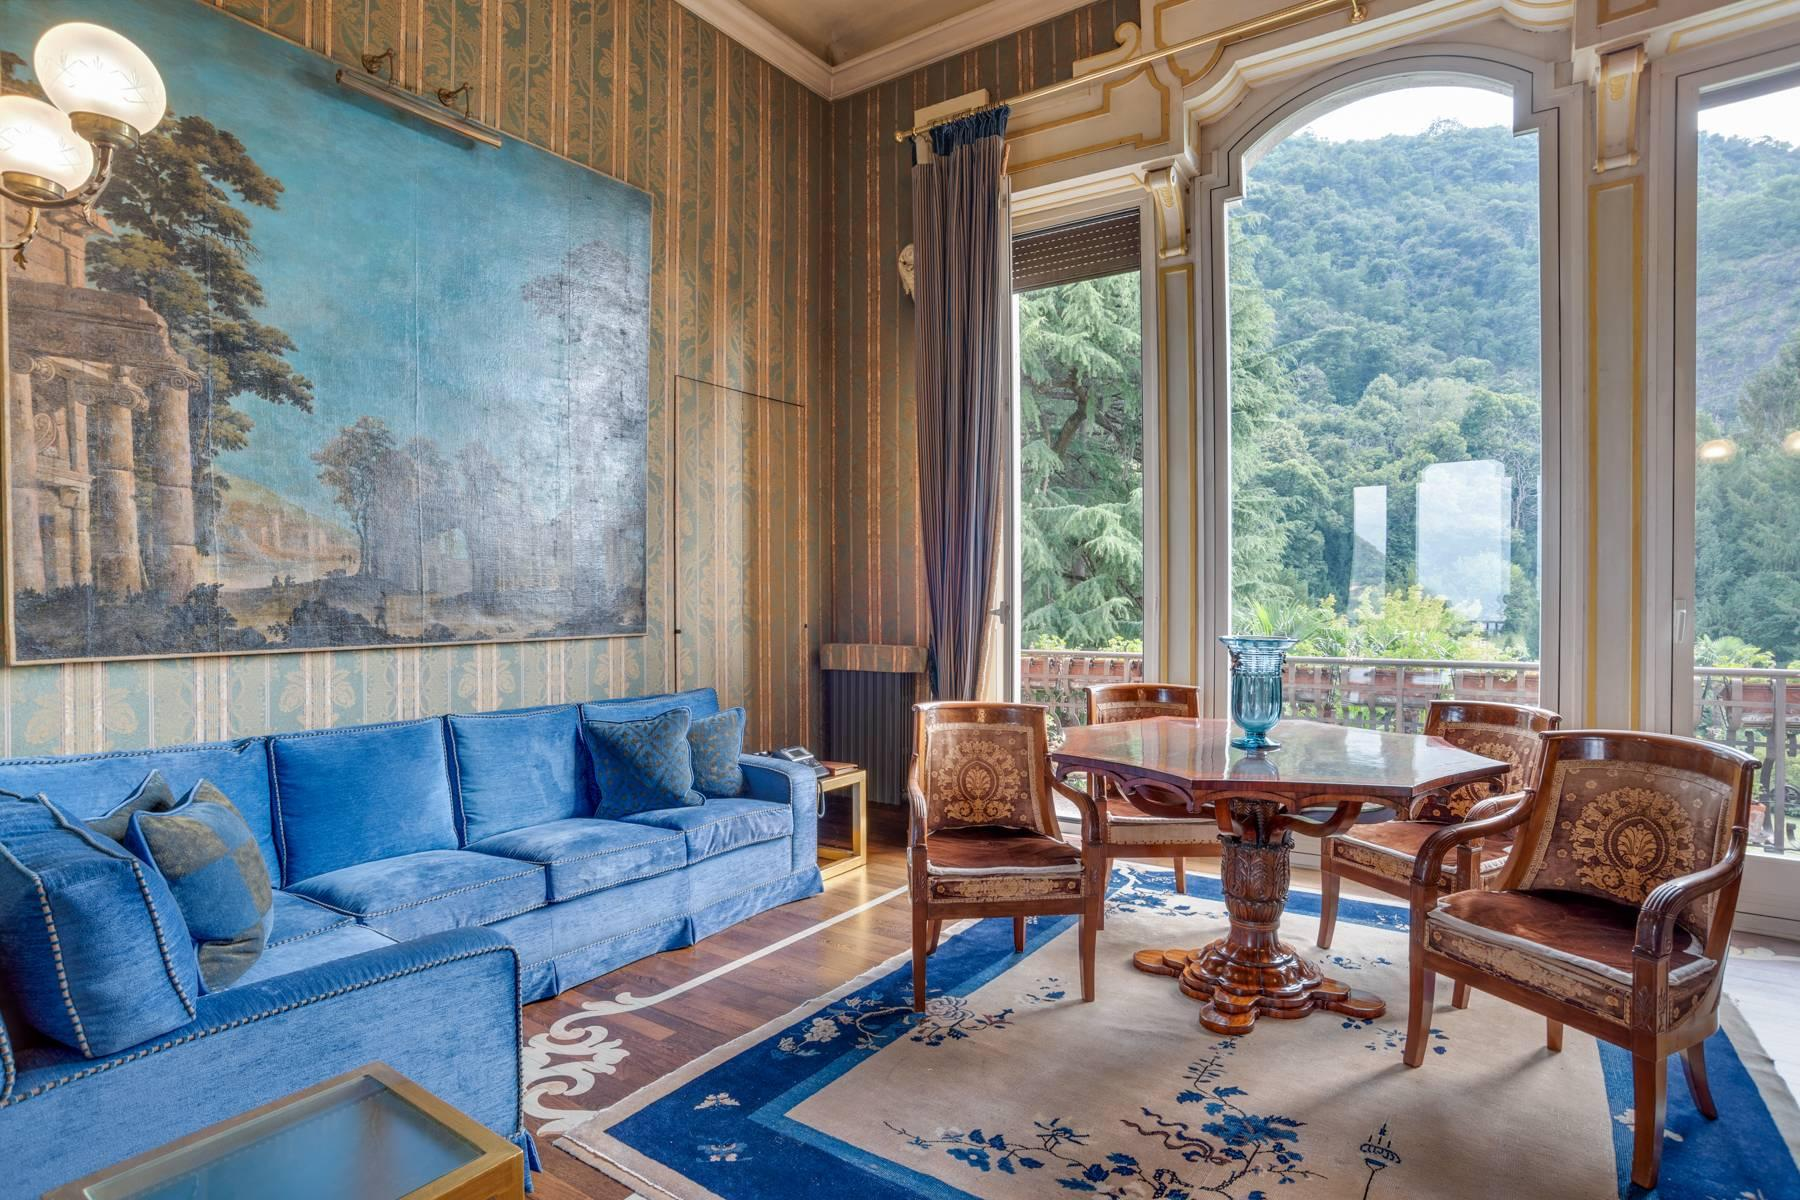 Fascinating apartment in an exclusive villa of the early 1900s - 15